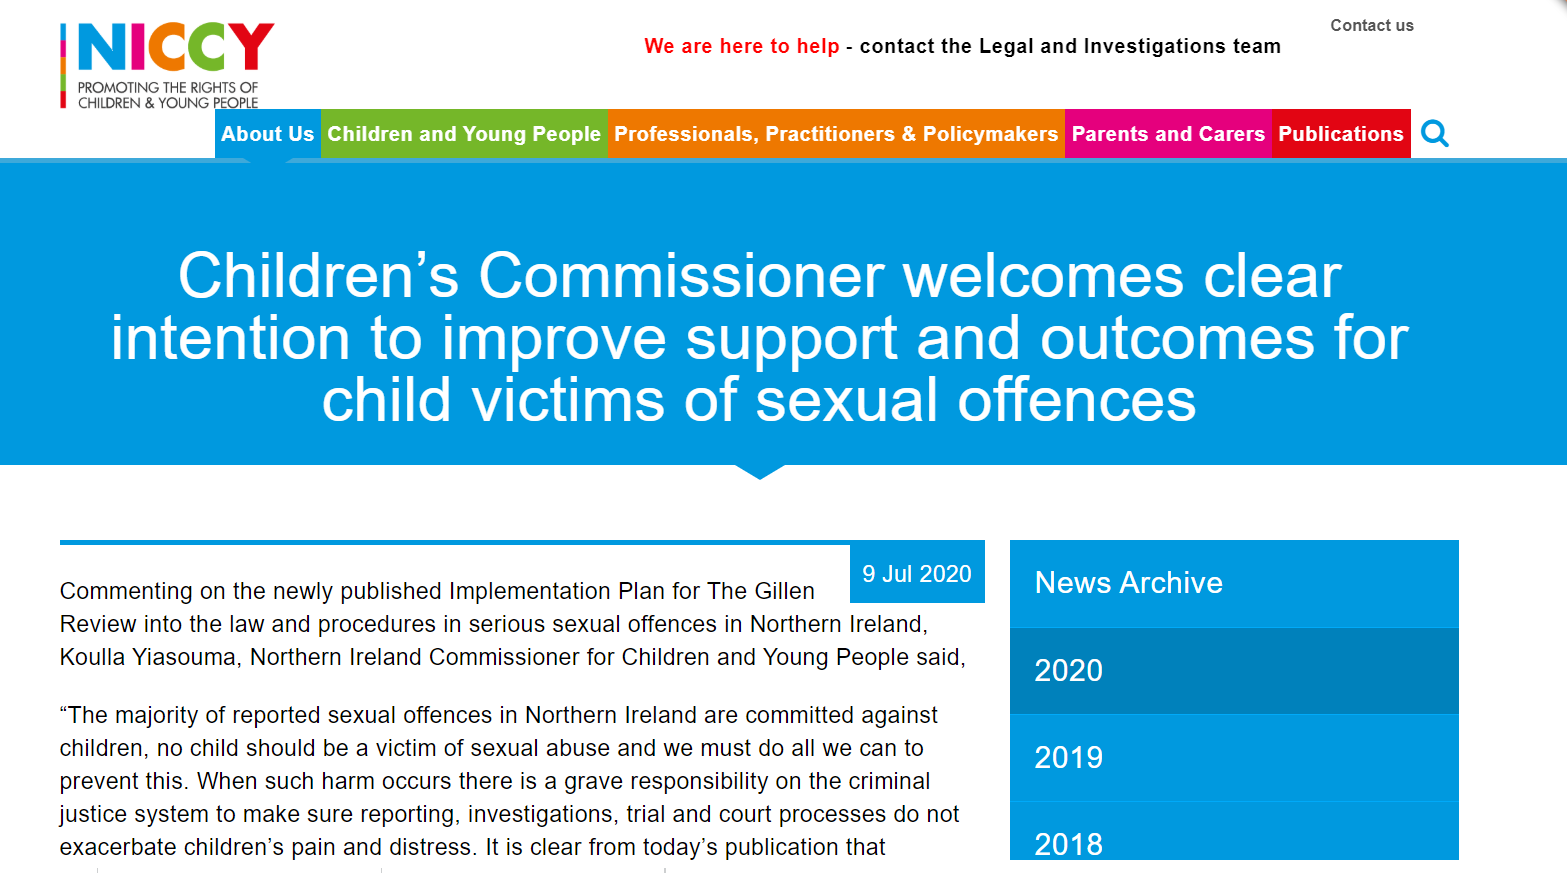 Image of Children's Commissioner welcomes clear intention to improve support and outcomes for child victims of sexual offences